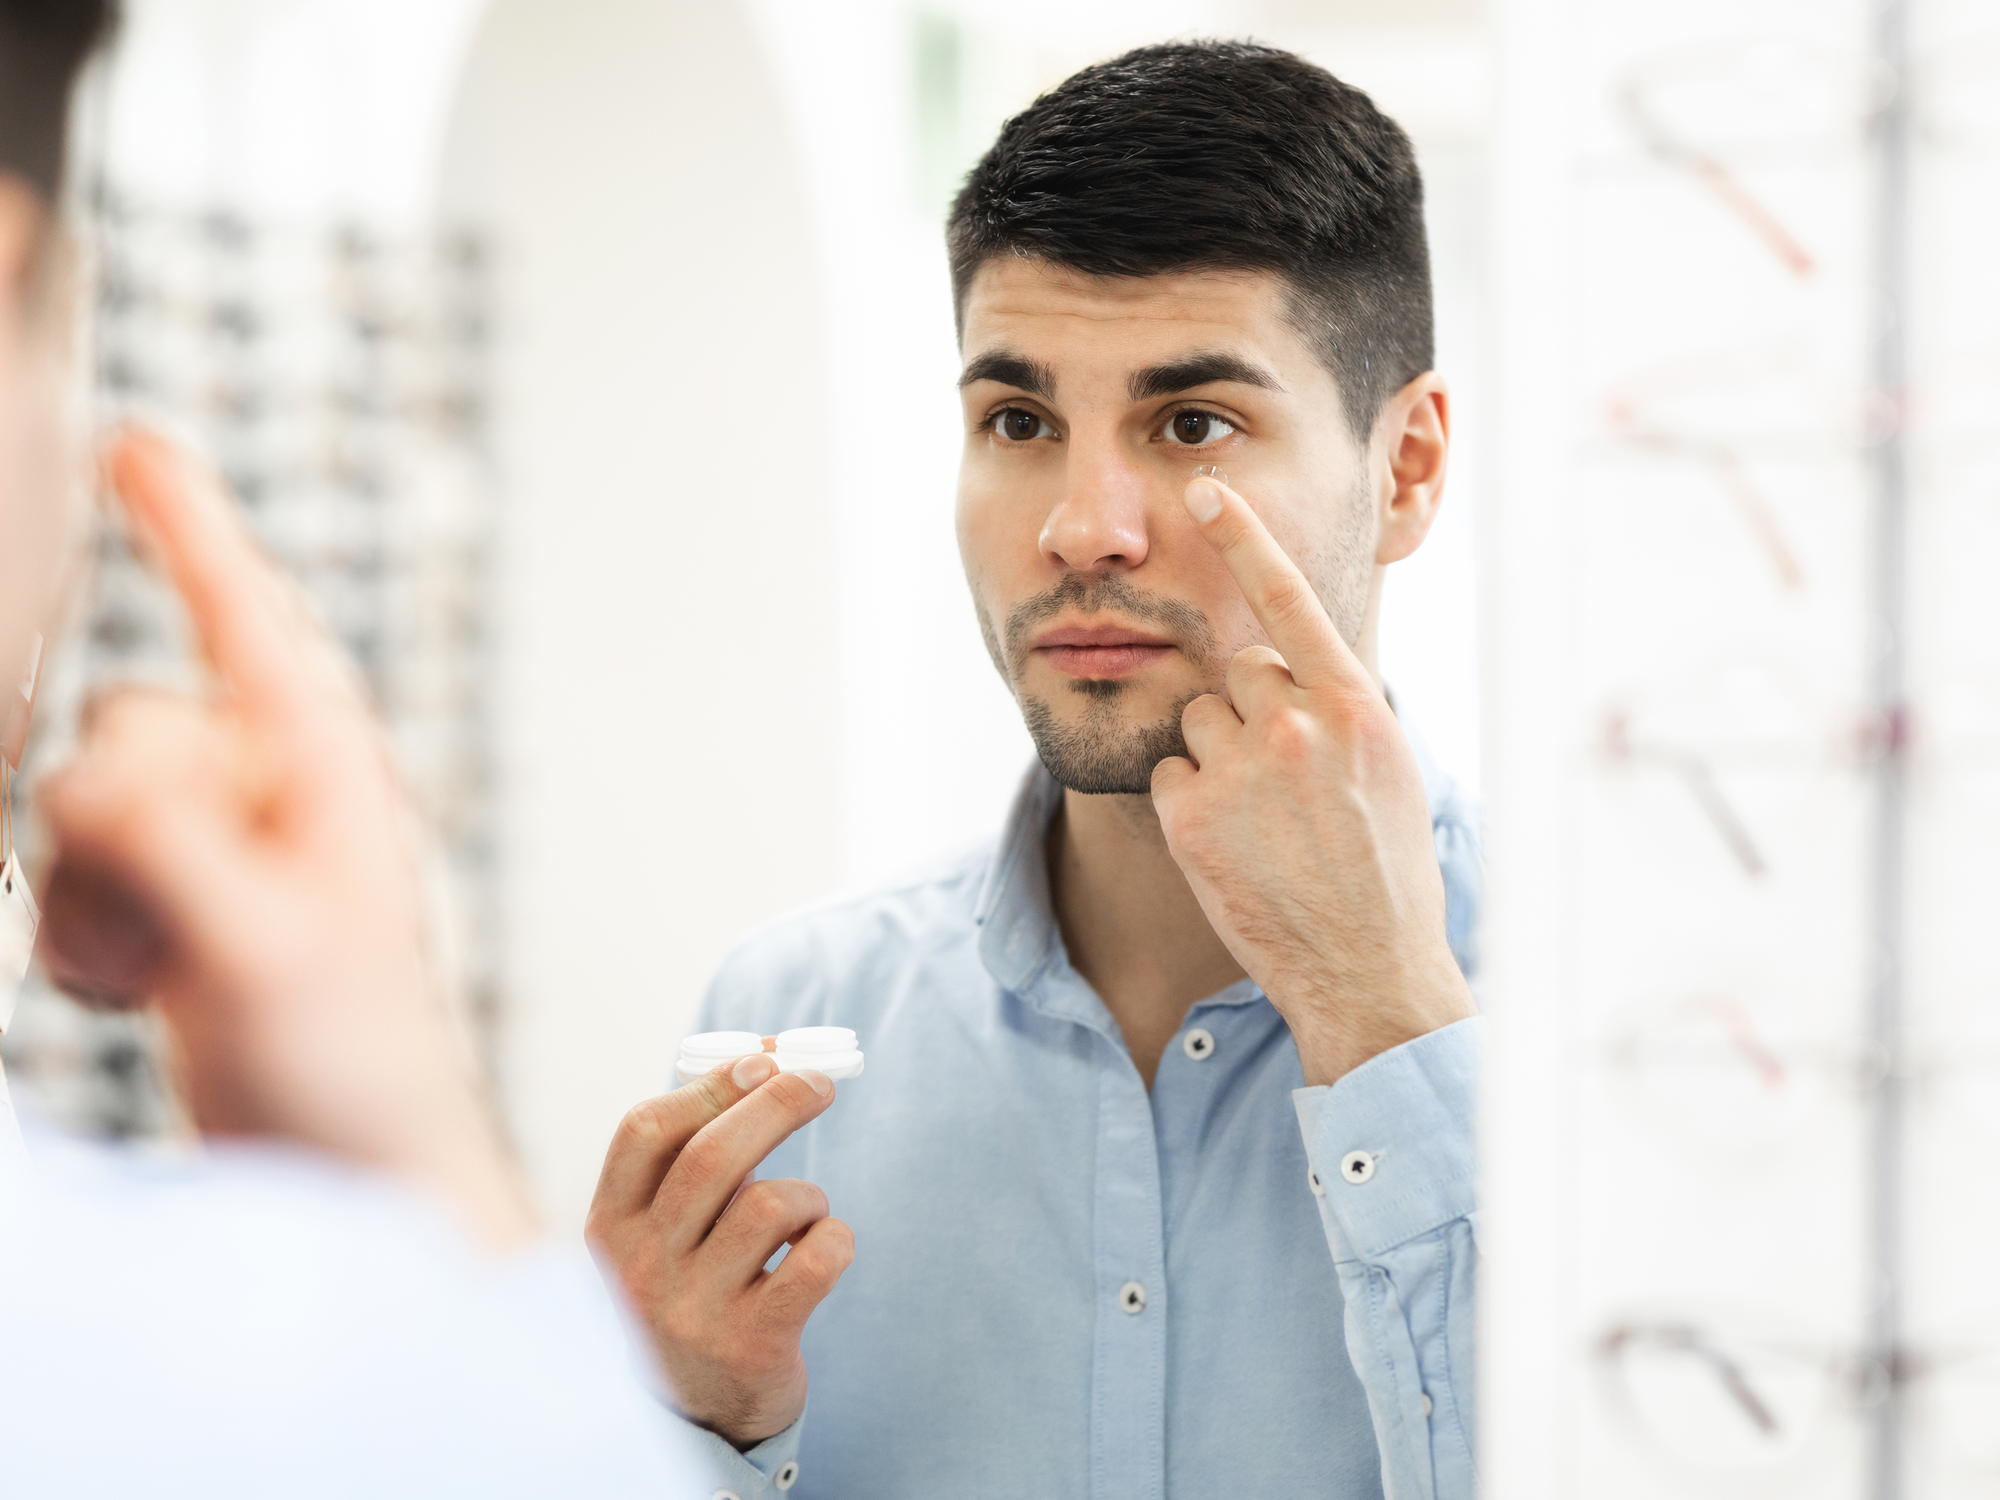 Benefits of MiSight® 1 Day Contact Lenses